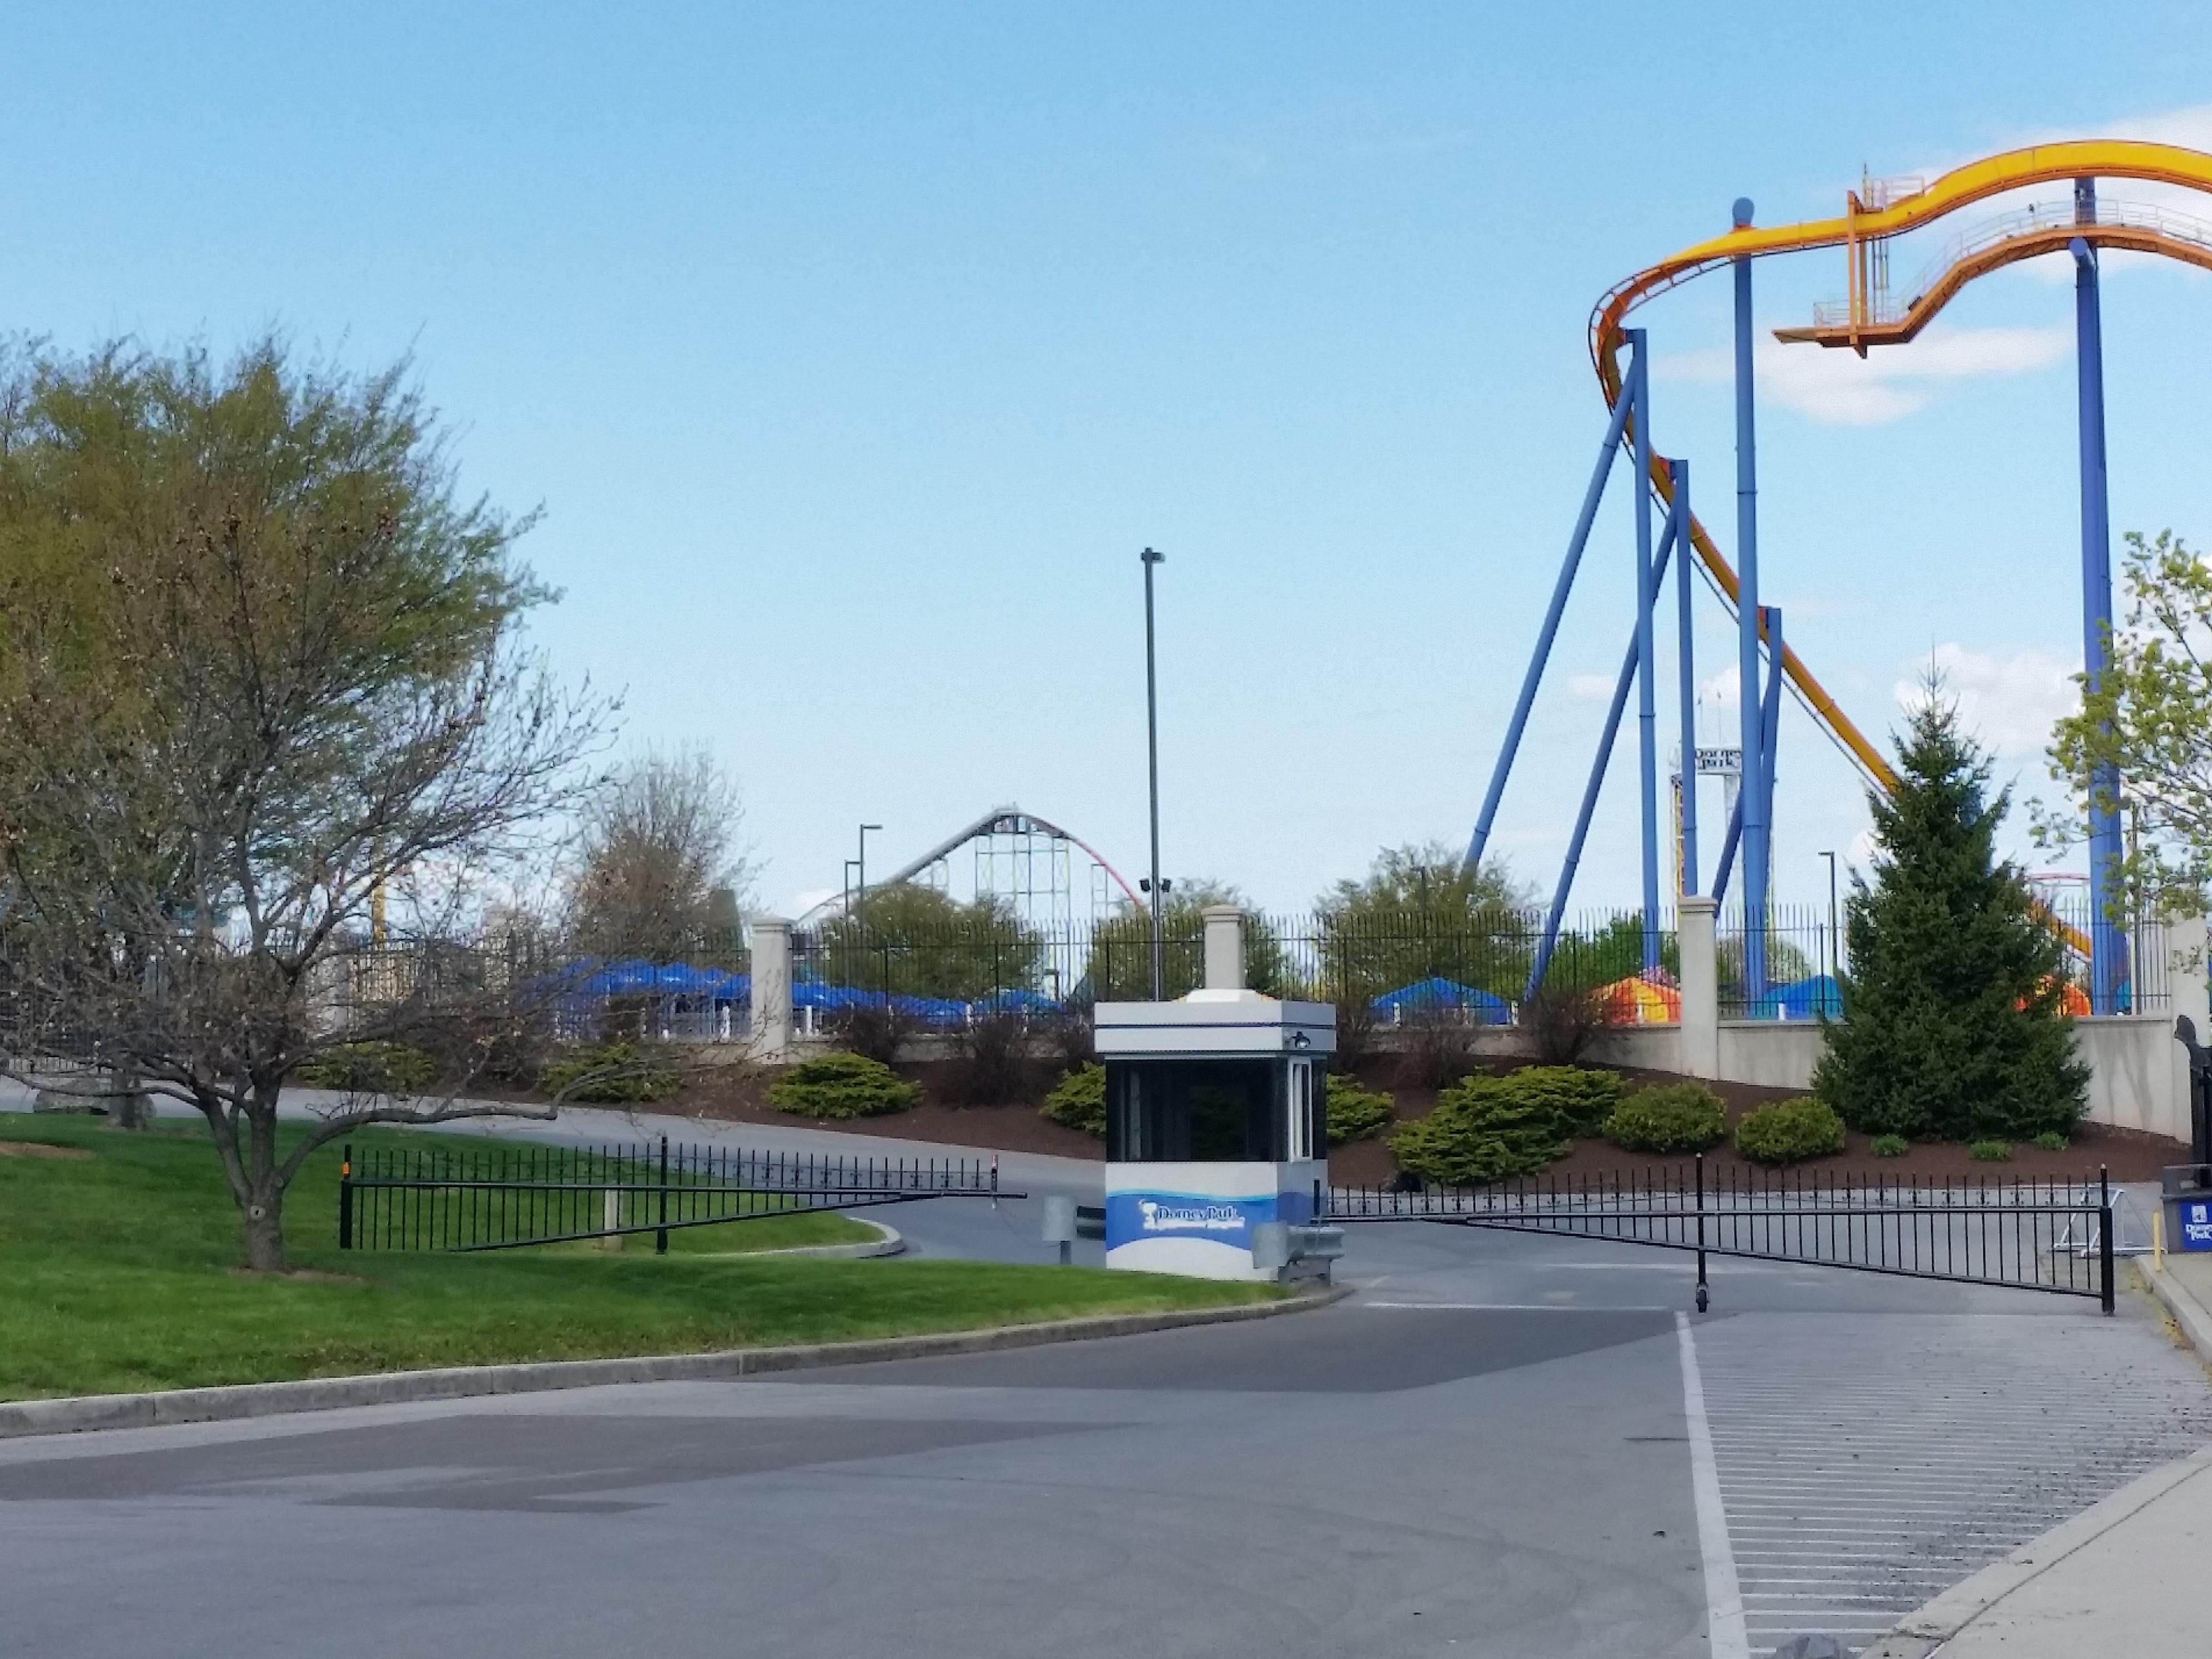 Dorney Park Wildewater Kingdom